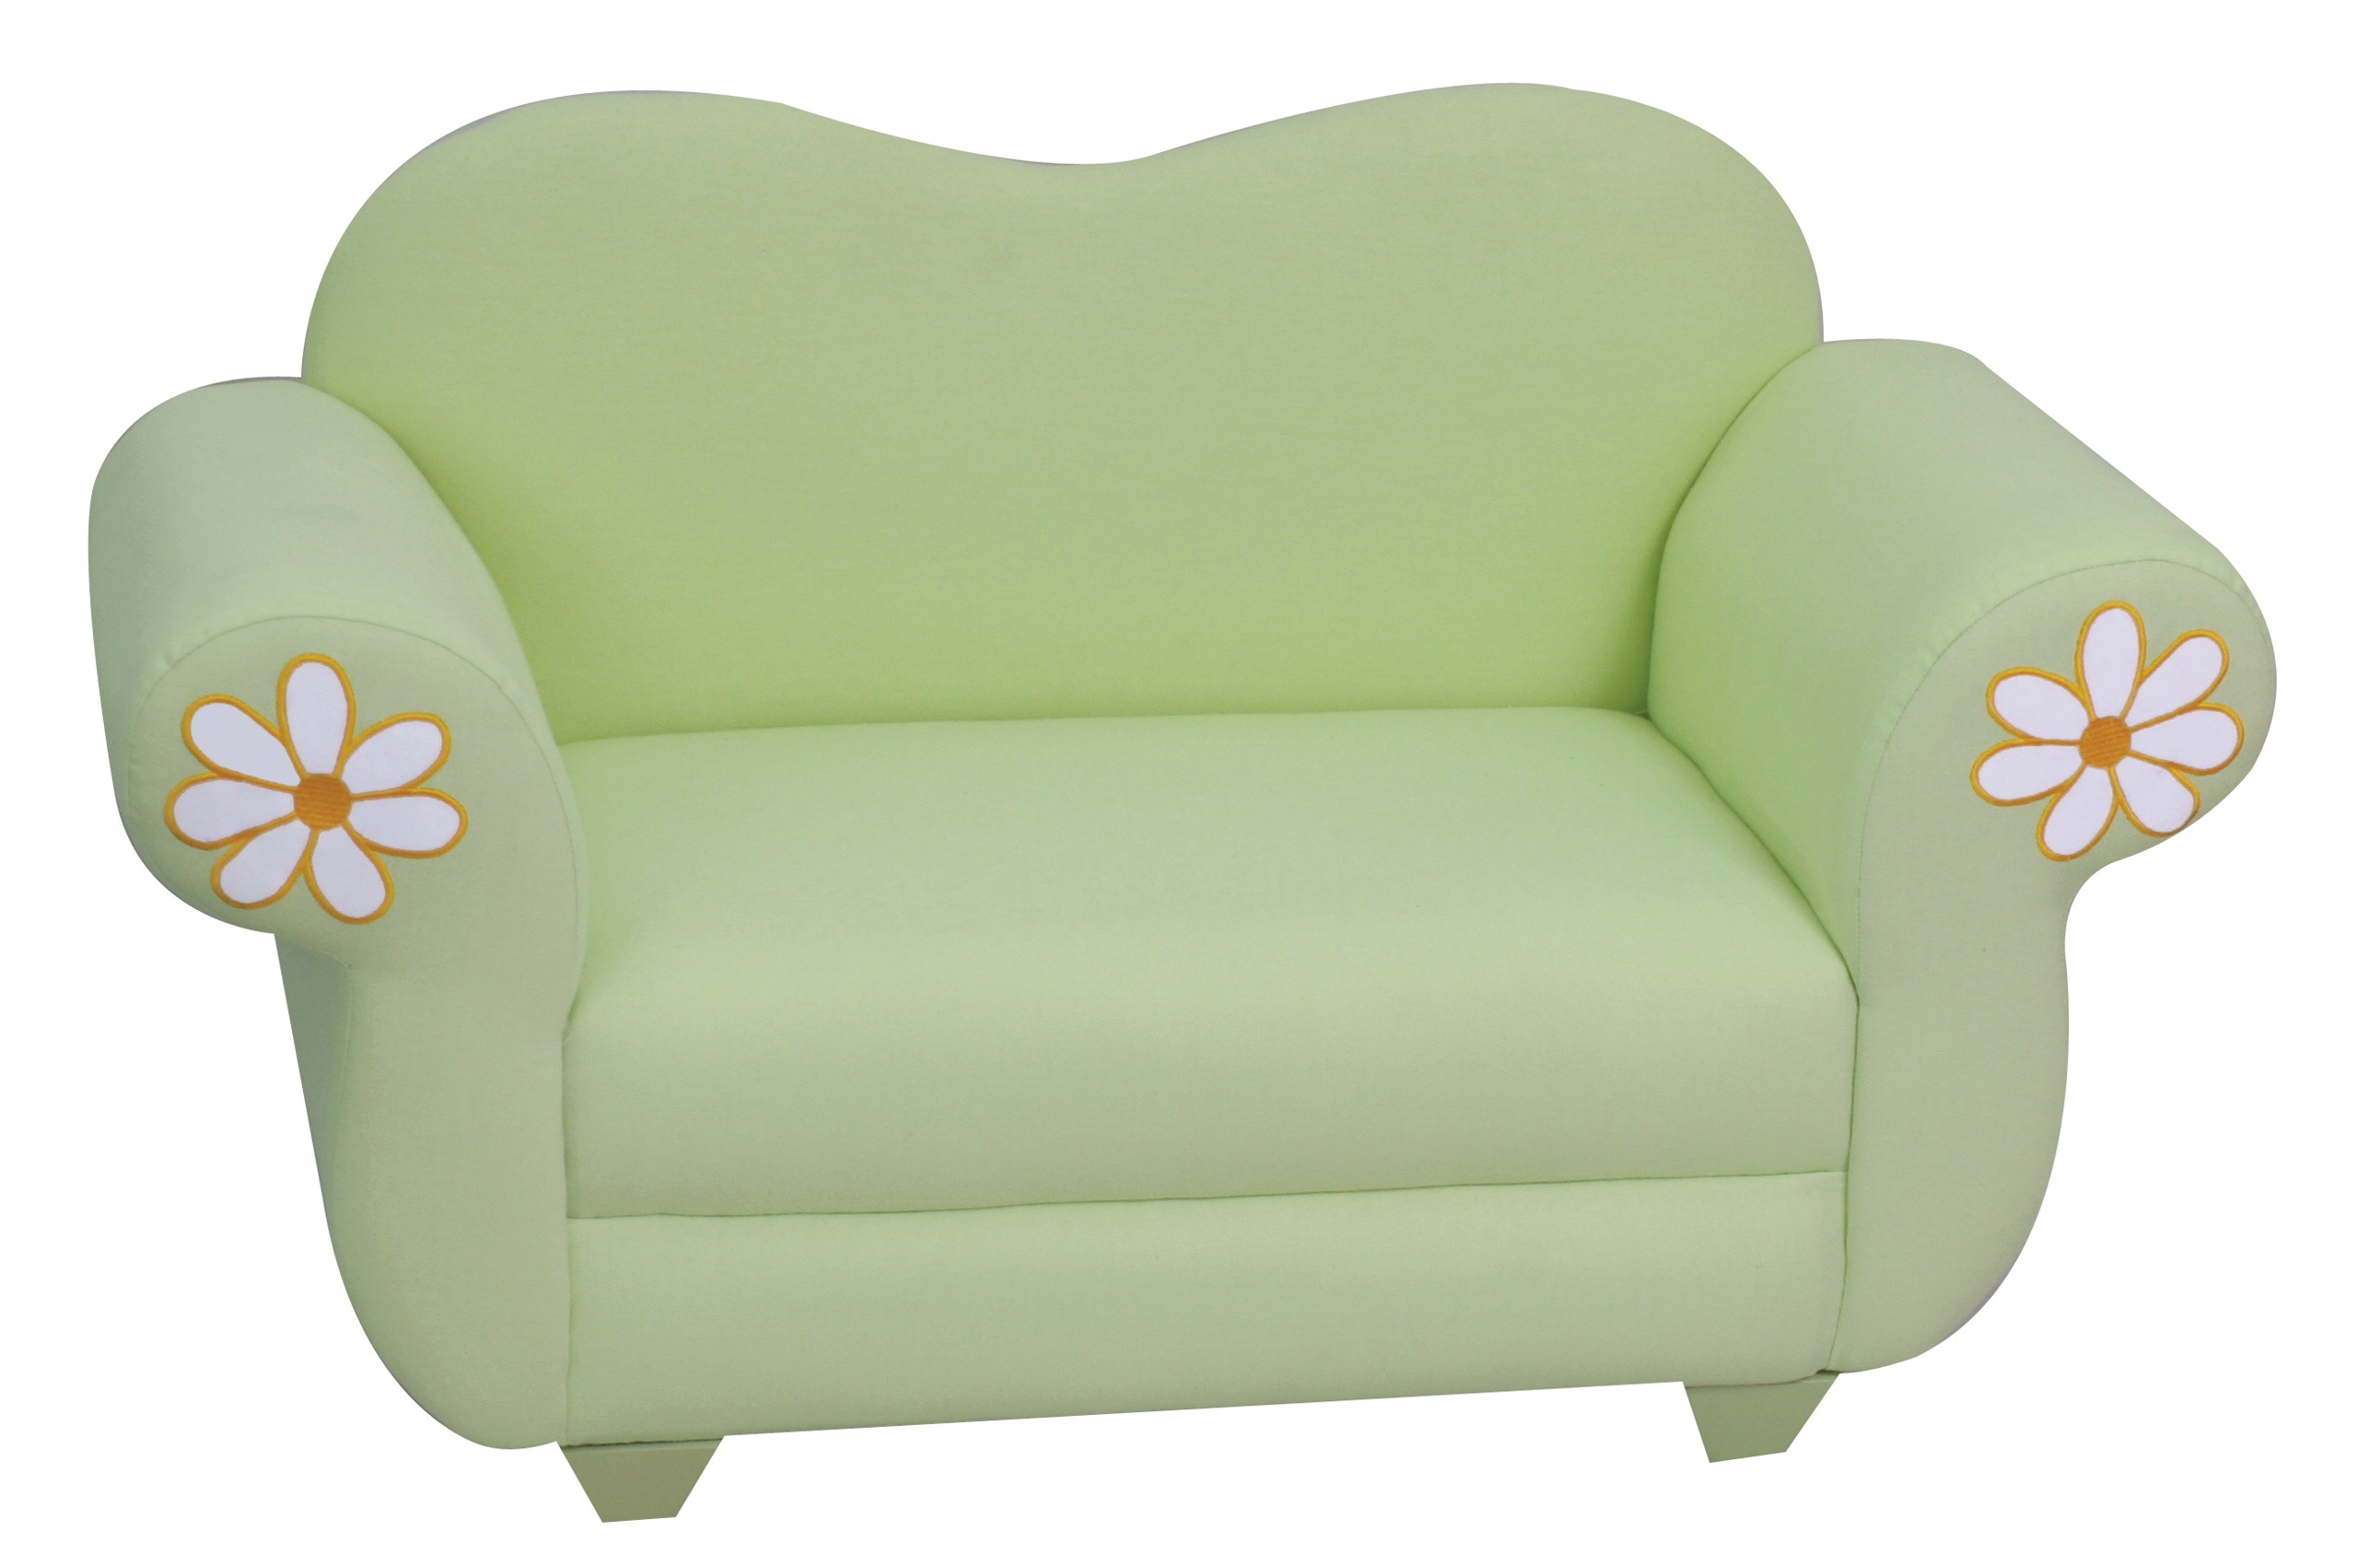 60 Kids Sofa Chair Impressive Sofas For Kids 2 Couch Chair For Regarding Sofa Chairs For Bedroom (Photo 9 of 15)